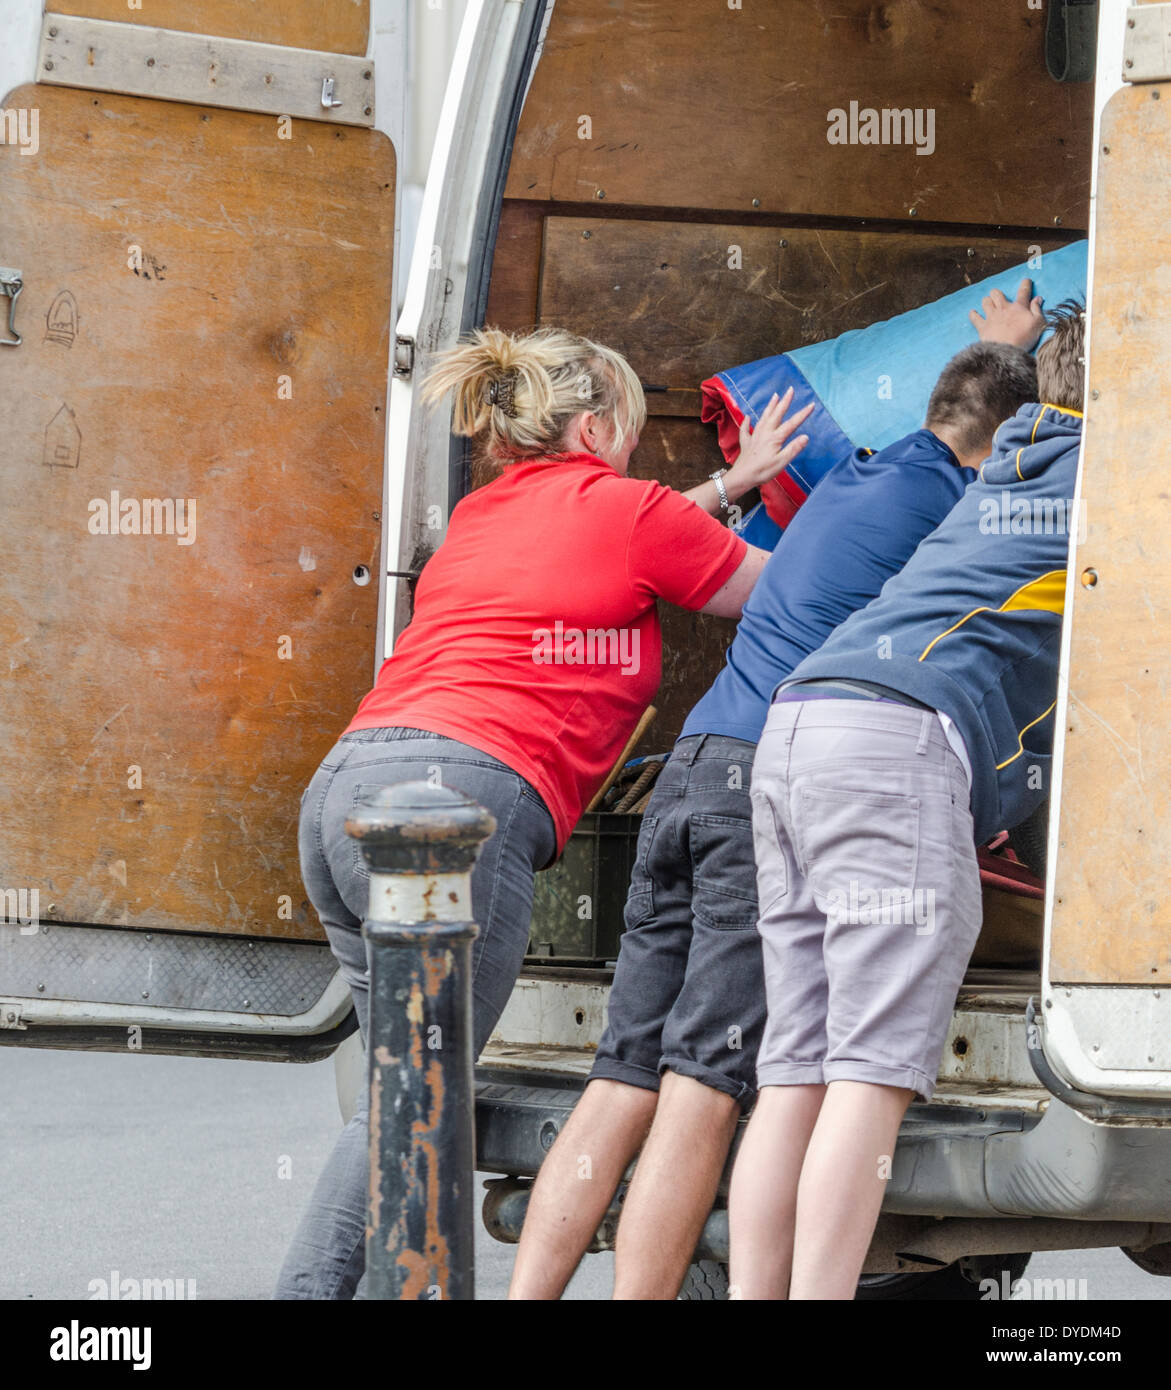 People loading items into the back of a van. - Stock Image